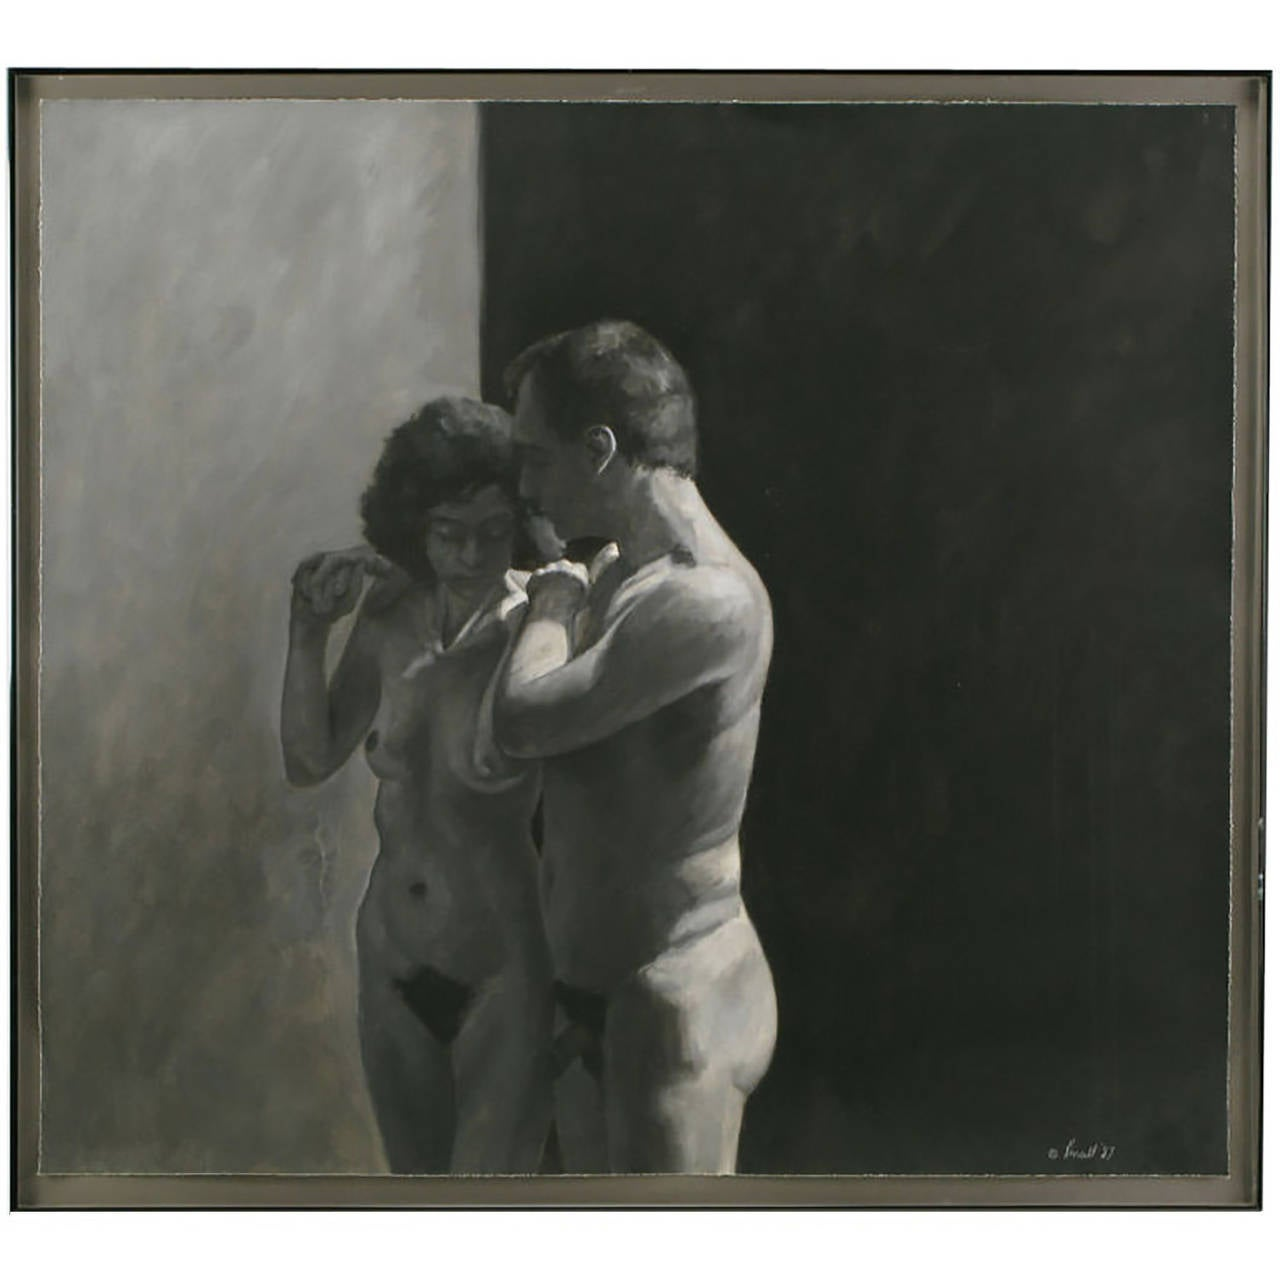 Gouache painting with charcoal drawing of a nude man and woman in a gallery style brushed gunmetal frame, signed Kinsell, 1987.  Dimensions inside frame: H 42